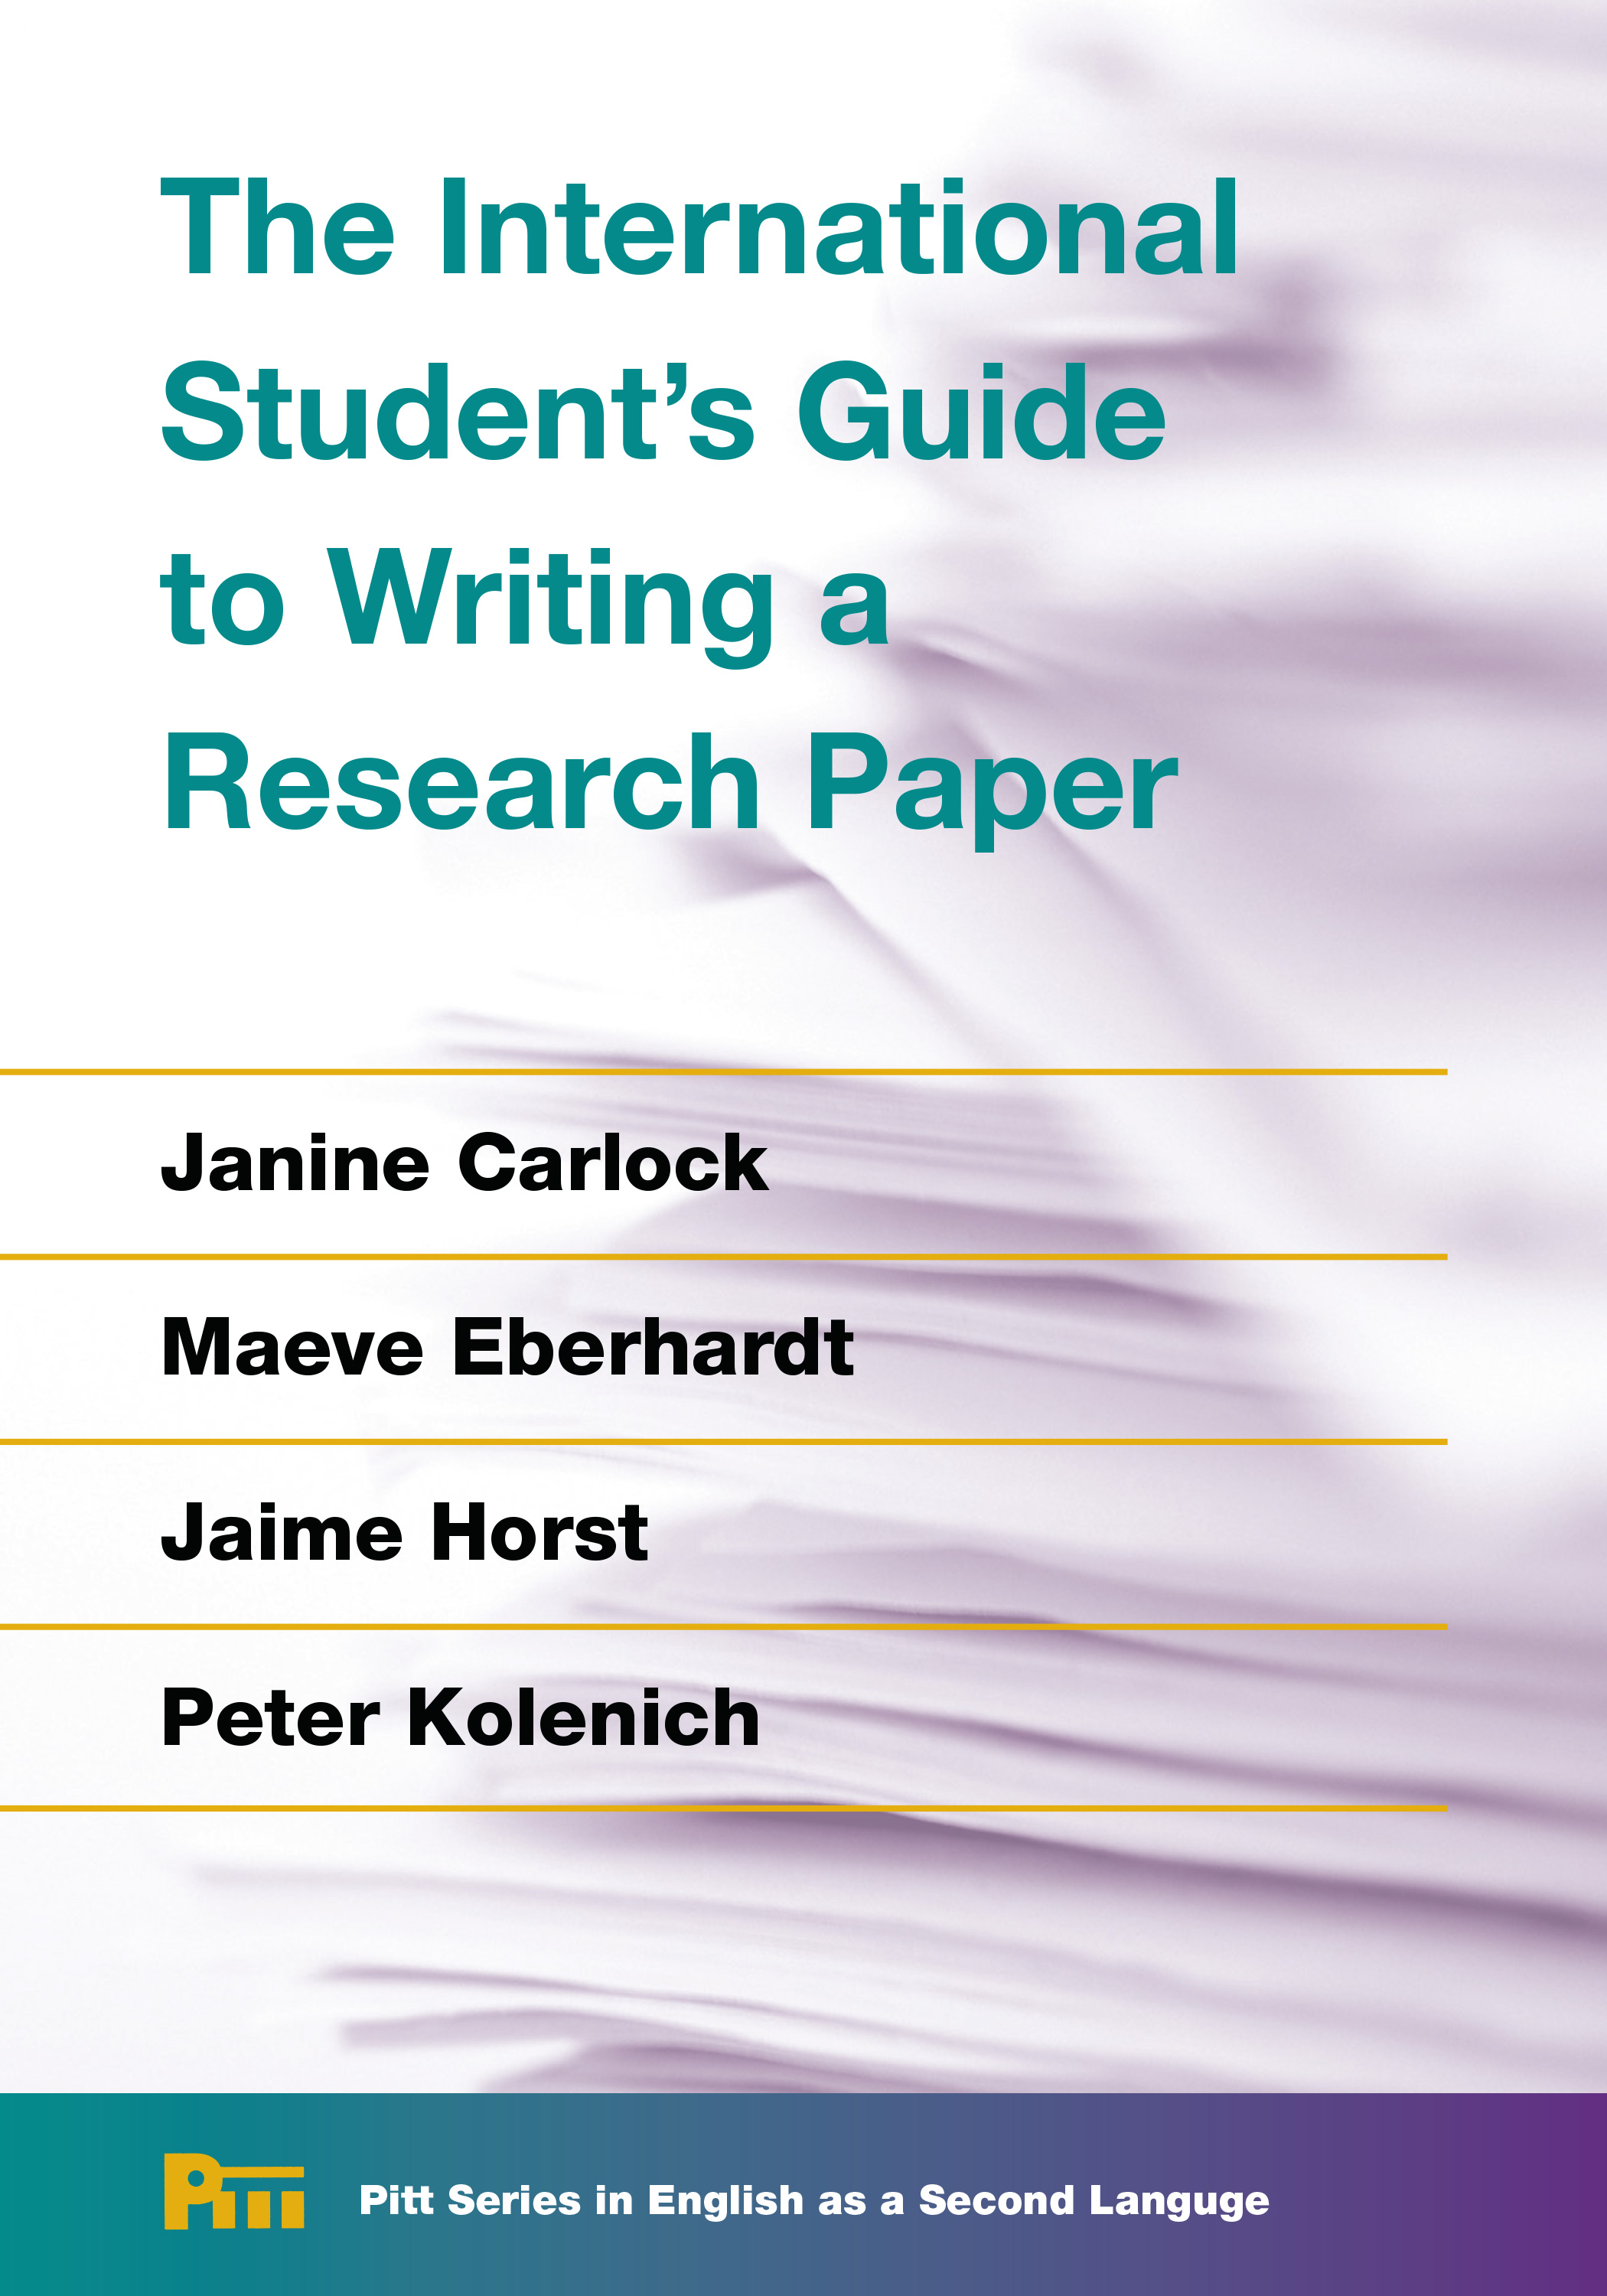 013 Writing The Research Paper Phenomenal Pdf How To Write A Outline Ppt Papers Complete Guide 16th Edition Full